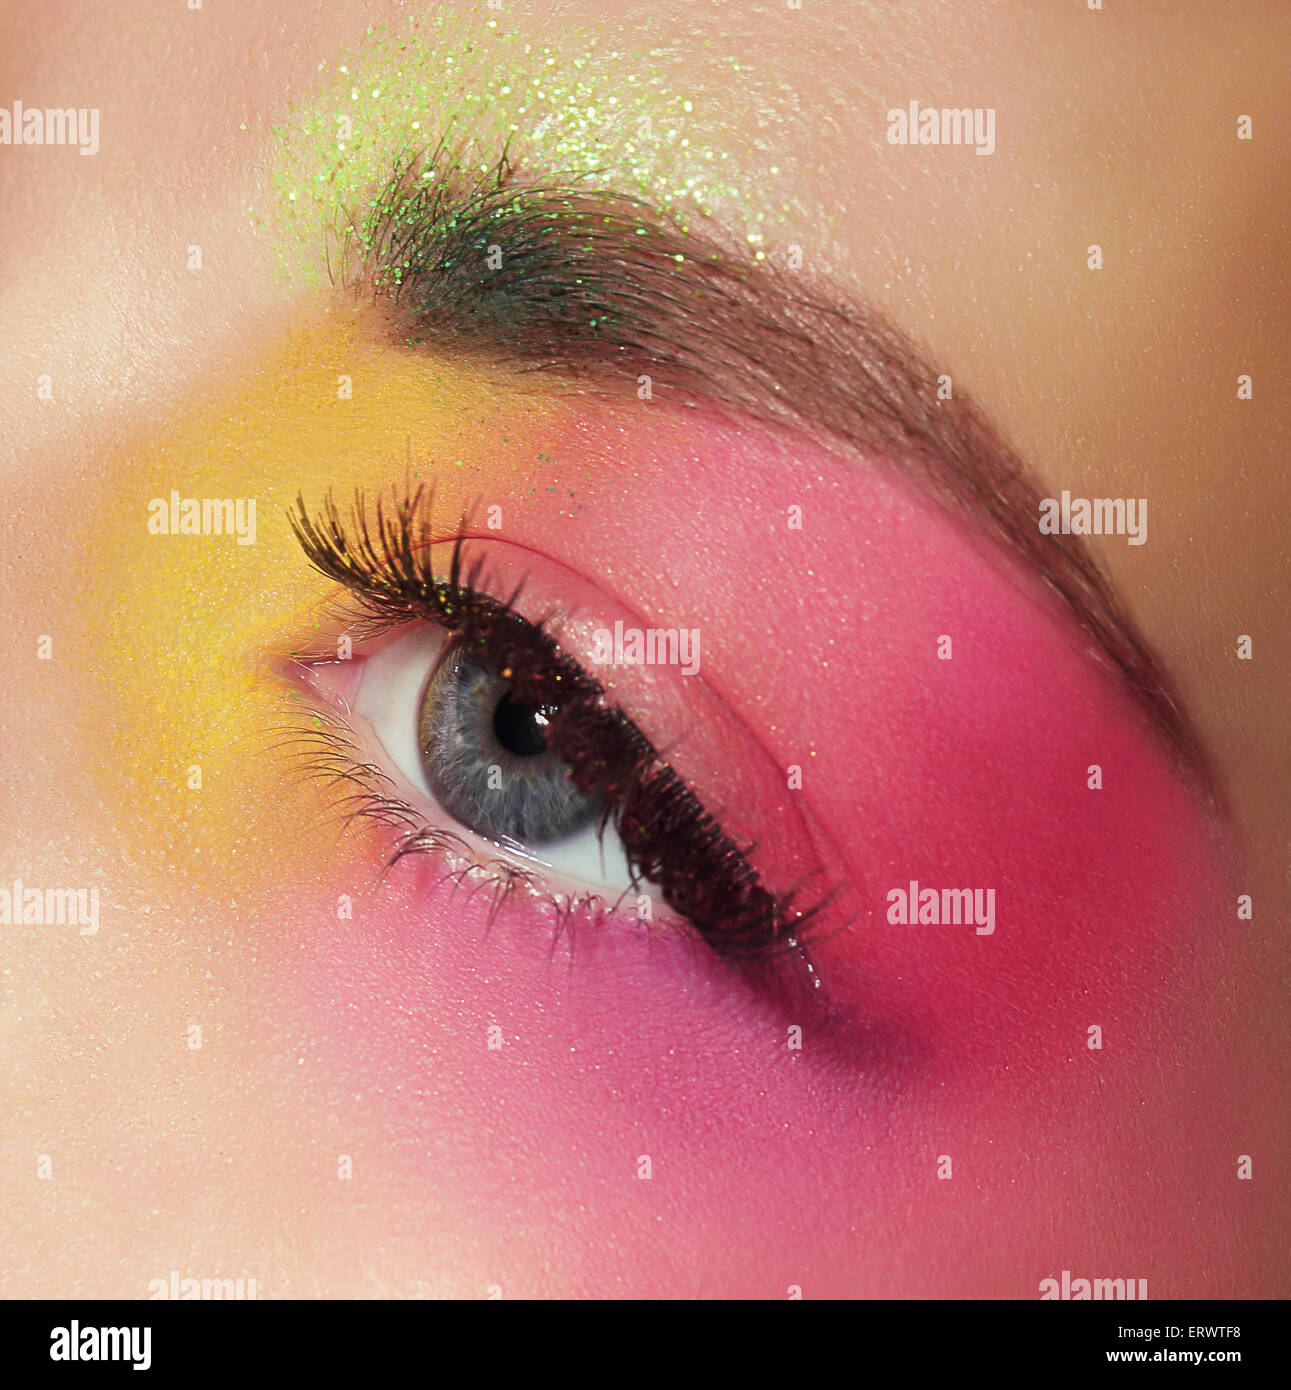 Cosmetics. Mascara. Woman's Eye with Colorful Makeup - Stock Image